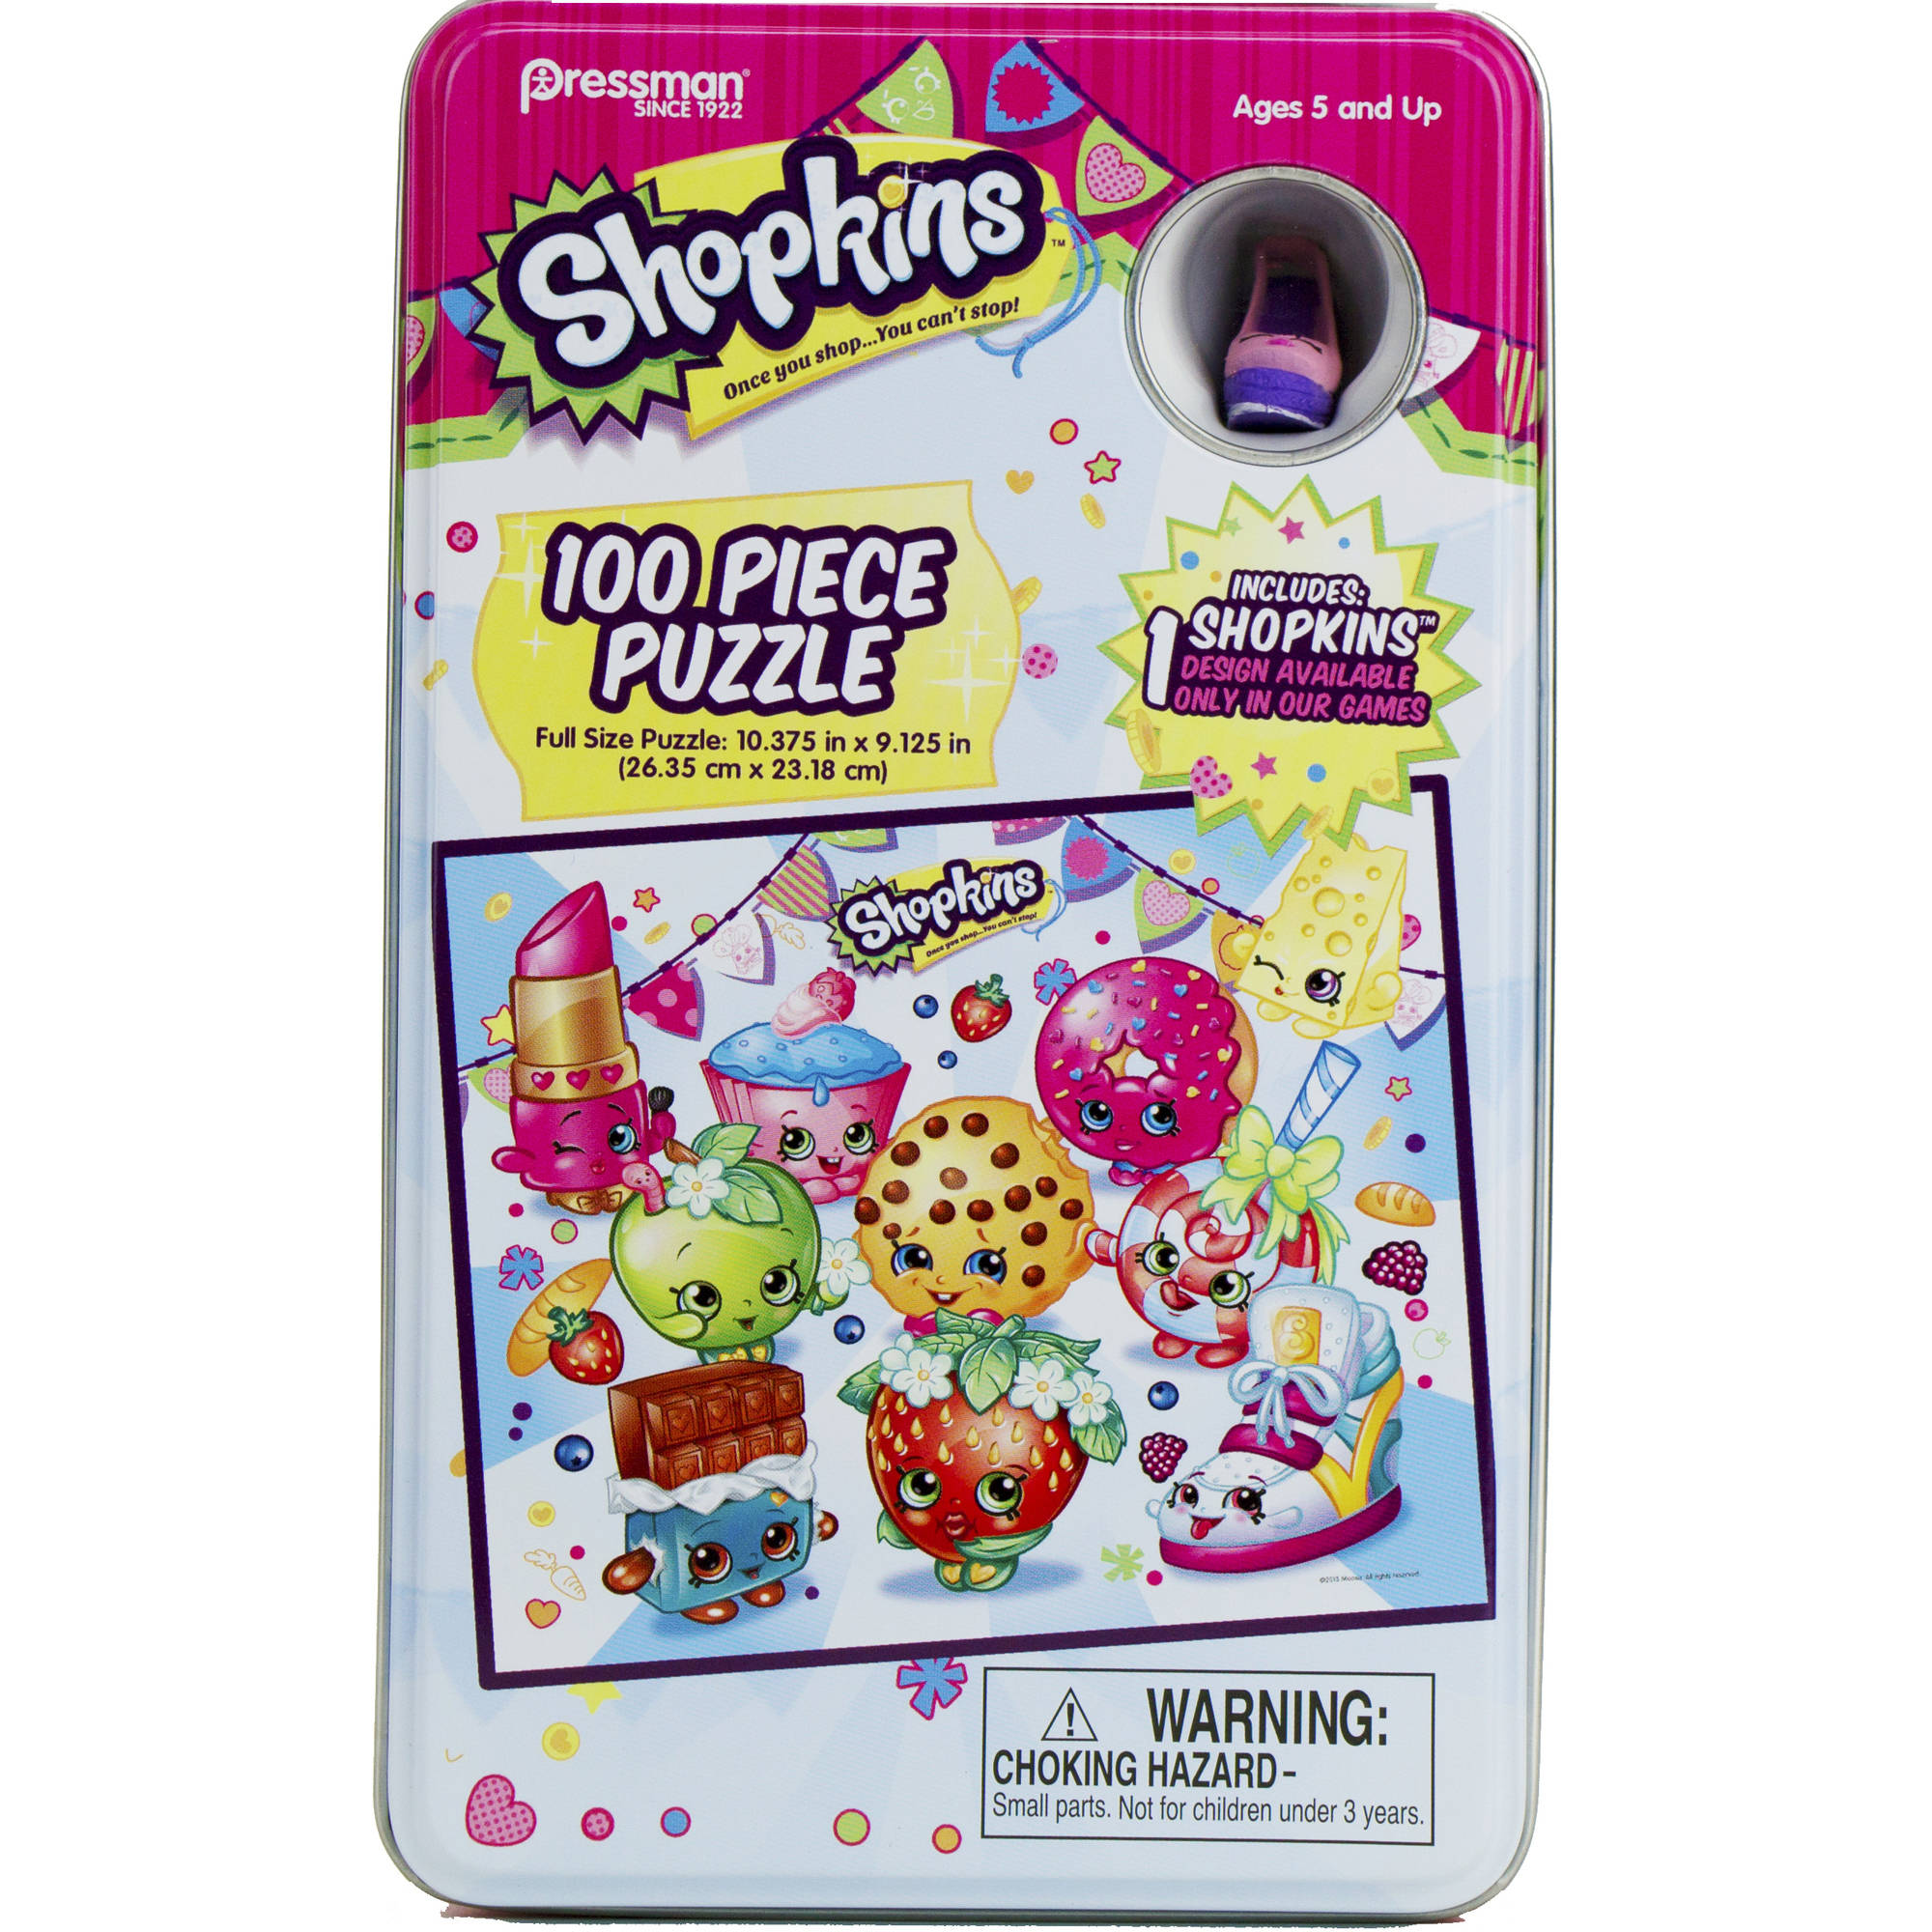 Shopkins 100-Piece Puzzle in Collectible Tin by Pressman Toy